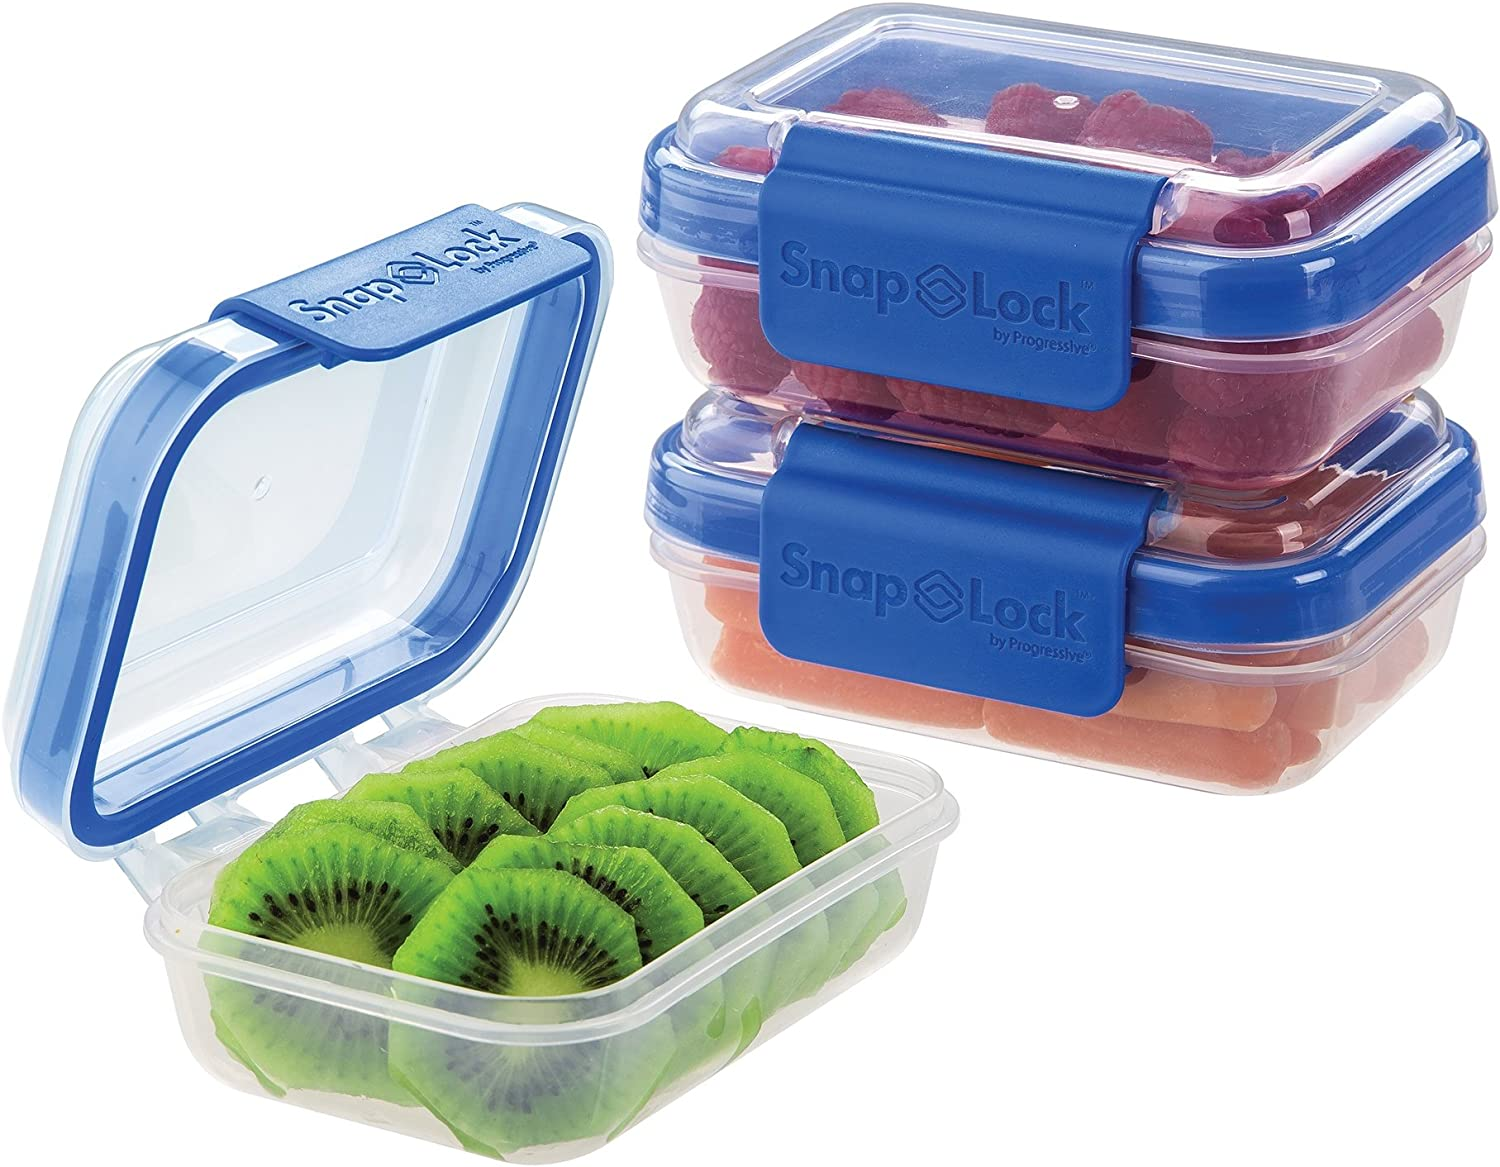 Leak-Proof Silicone Seal SNL-1015SETG  Easy-To-Open SnapLock by Progressive 2-Cup Container Set Stackable Green 2-Pack, 2-Cup Capacity BPA FREE Snap-Off Lid